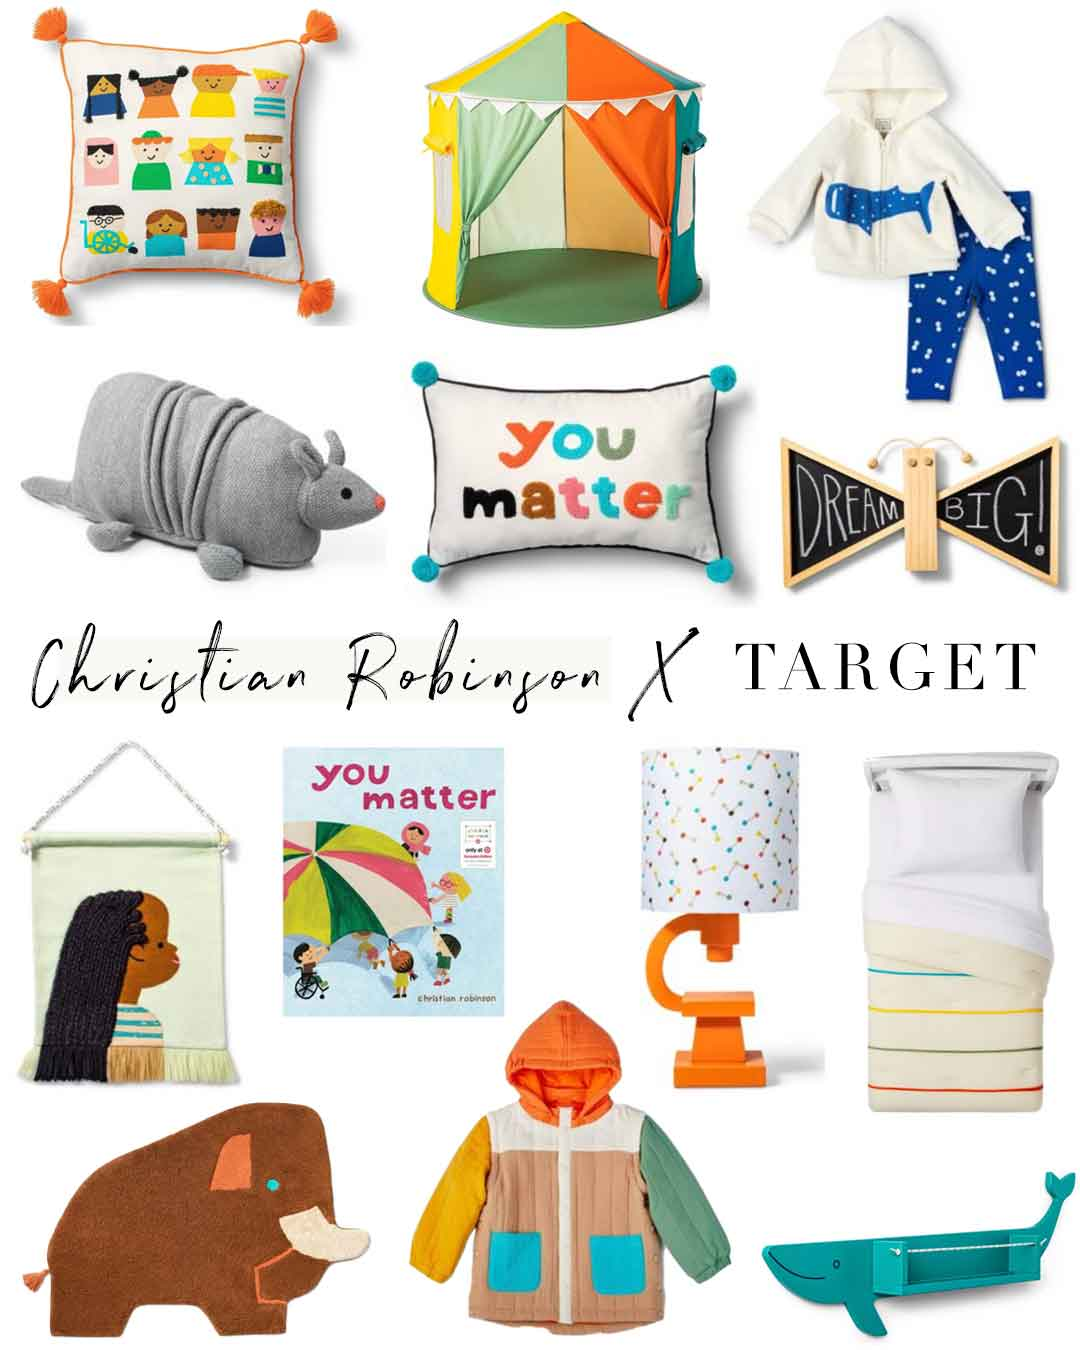 Christian Robinson x Target coming August 15th!